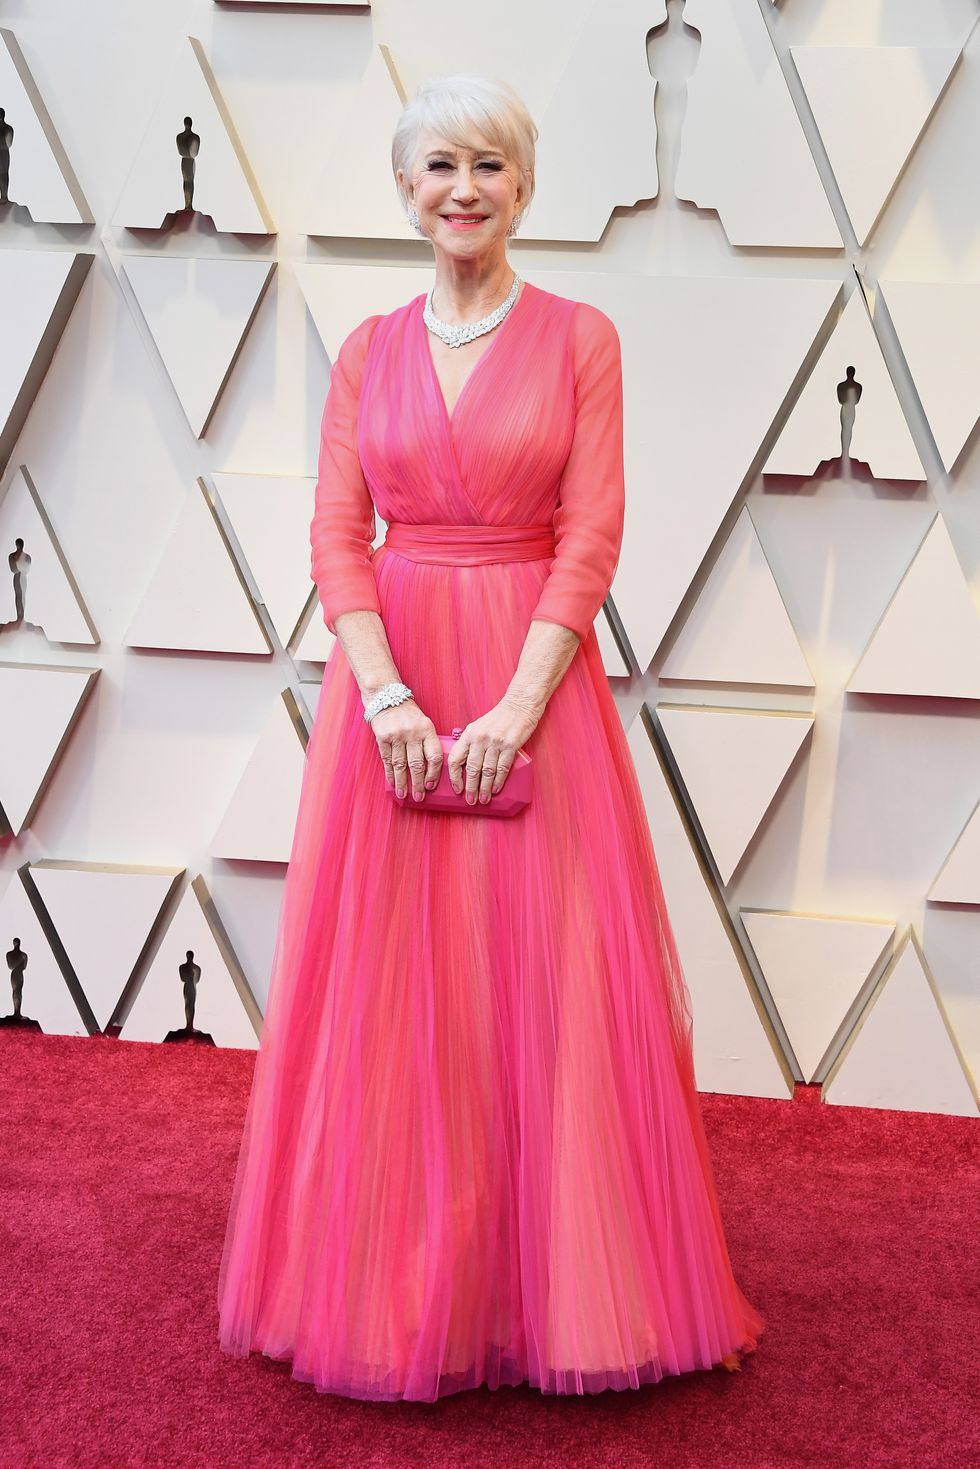 helen-mirren-attends-the-91st-annual-academy-awards-at-news-photo-1127183813-1551052698